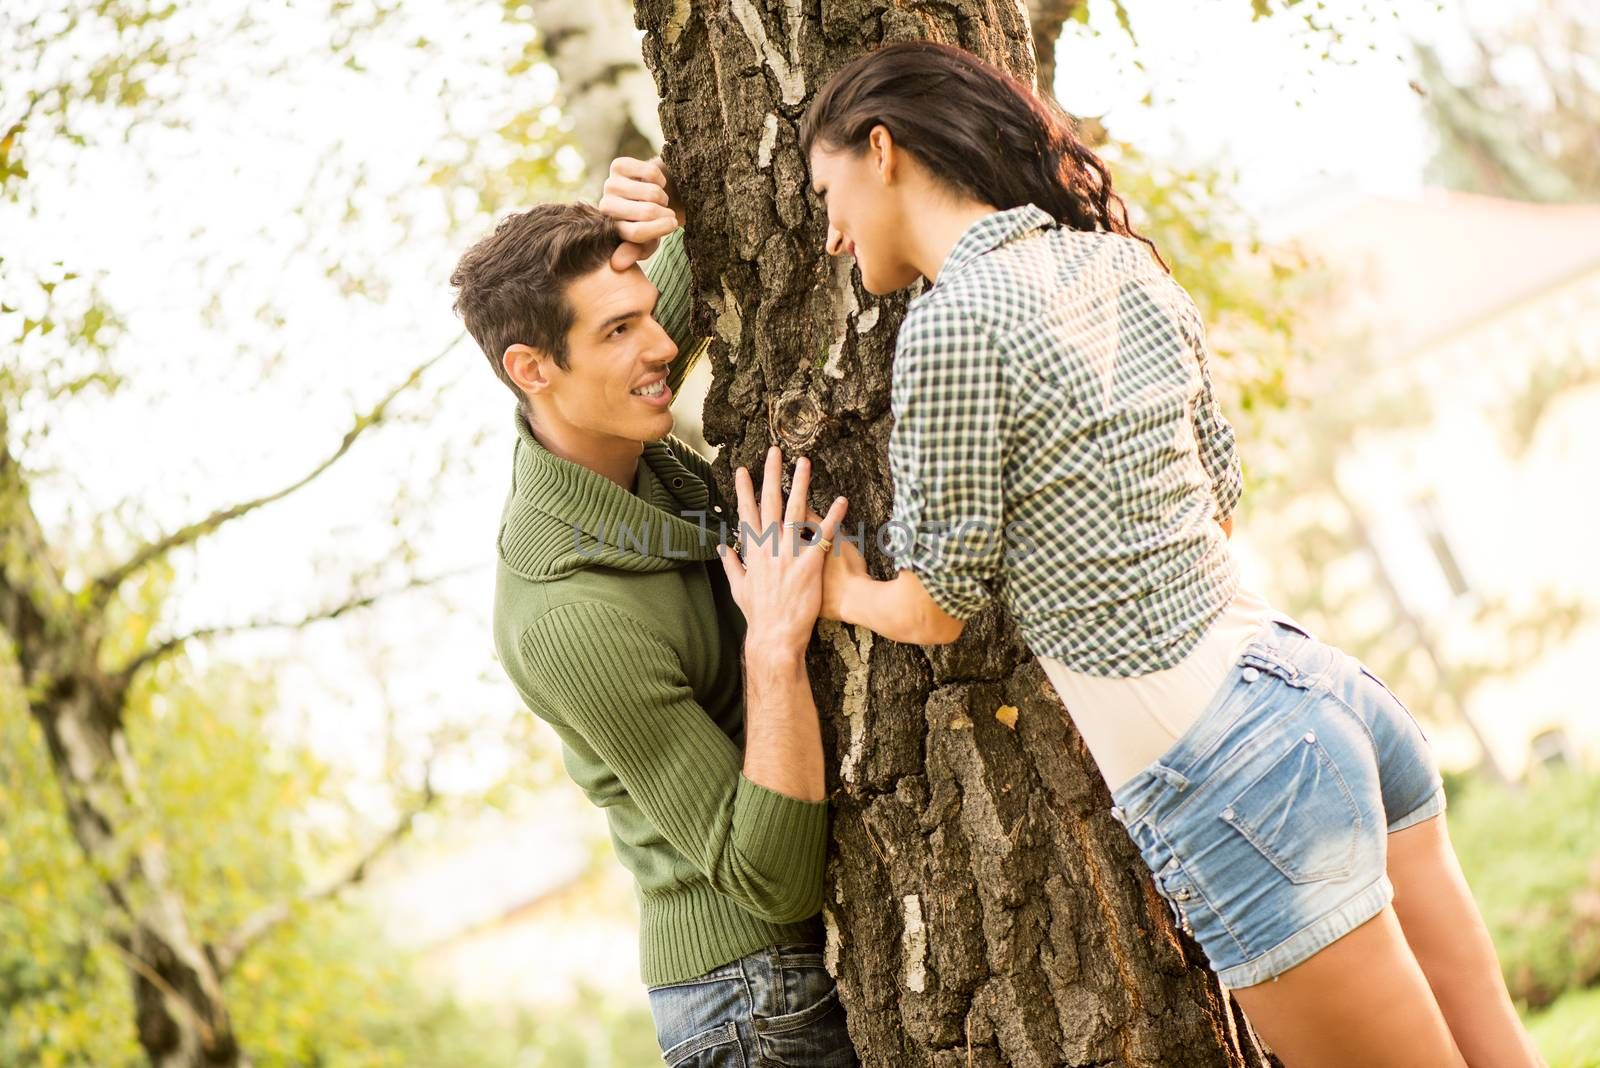 Young guy and girl in the park, play a romantic game of hiding by the tree.